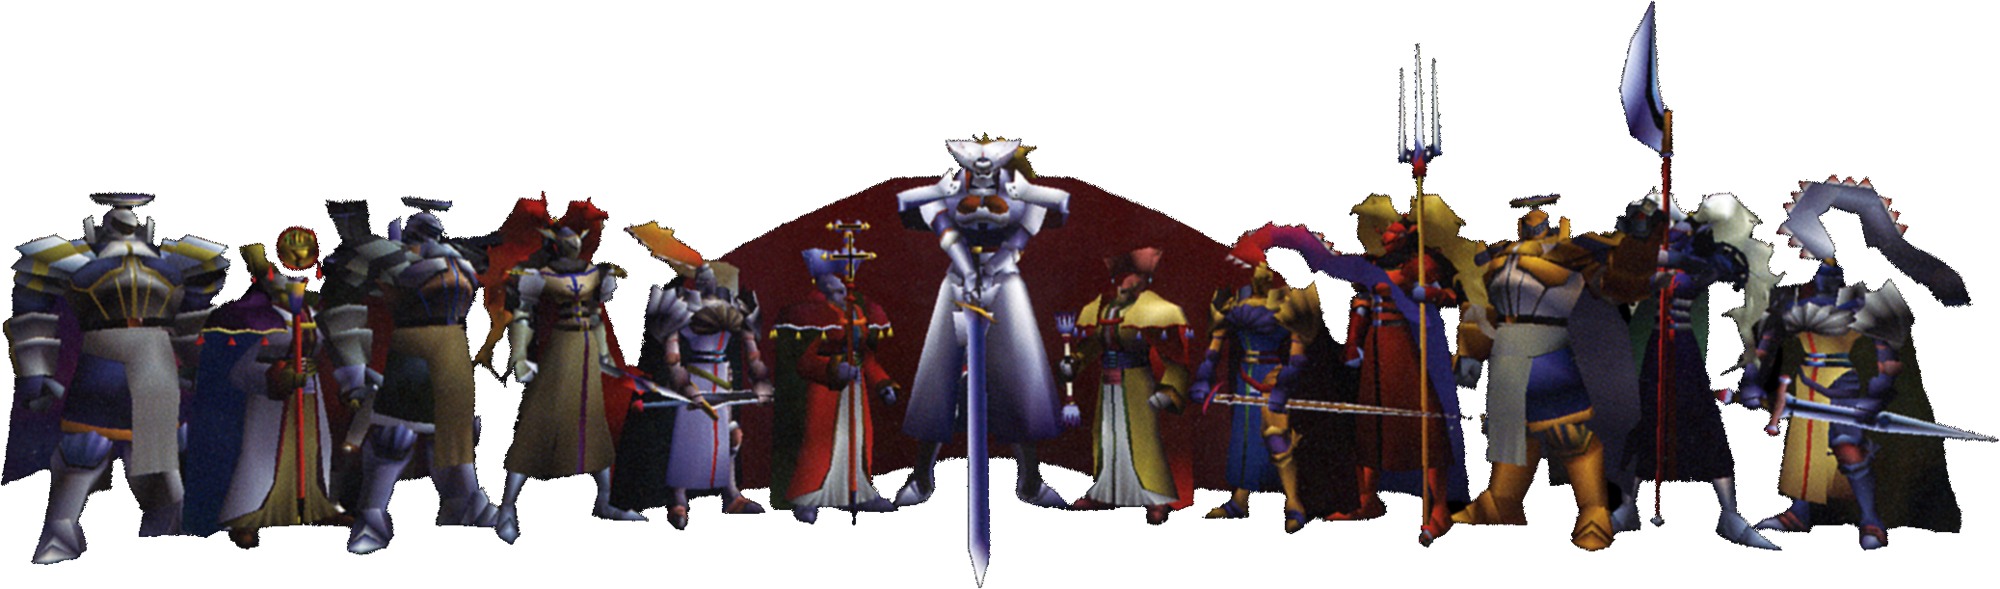 Knights Of The Round Table Wiki Knights Of The Round Summon Final Fantasy Wiki Fandom